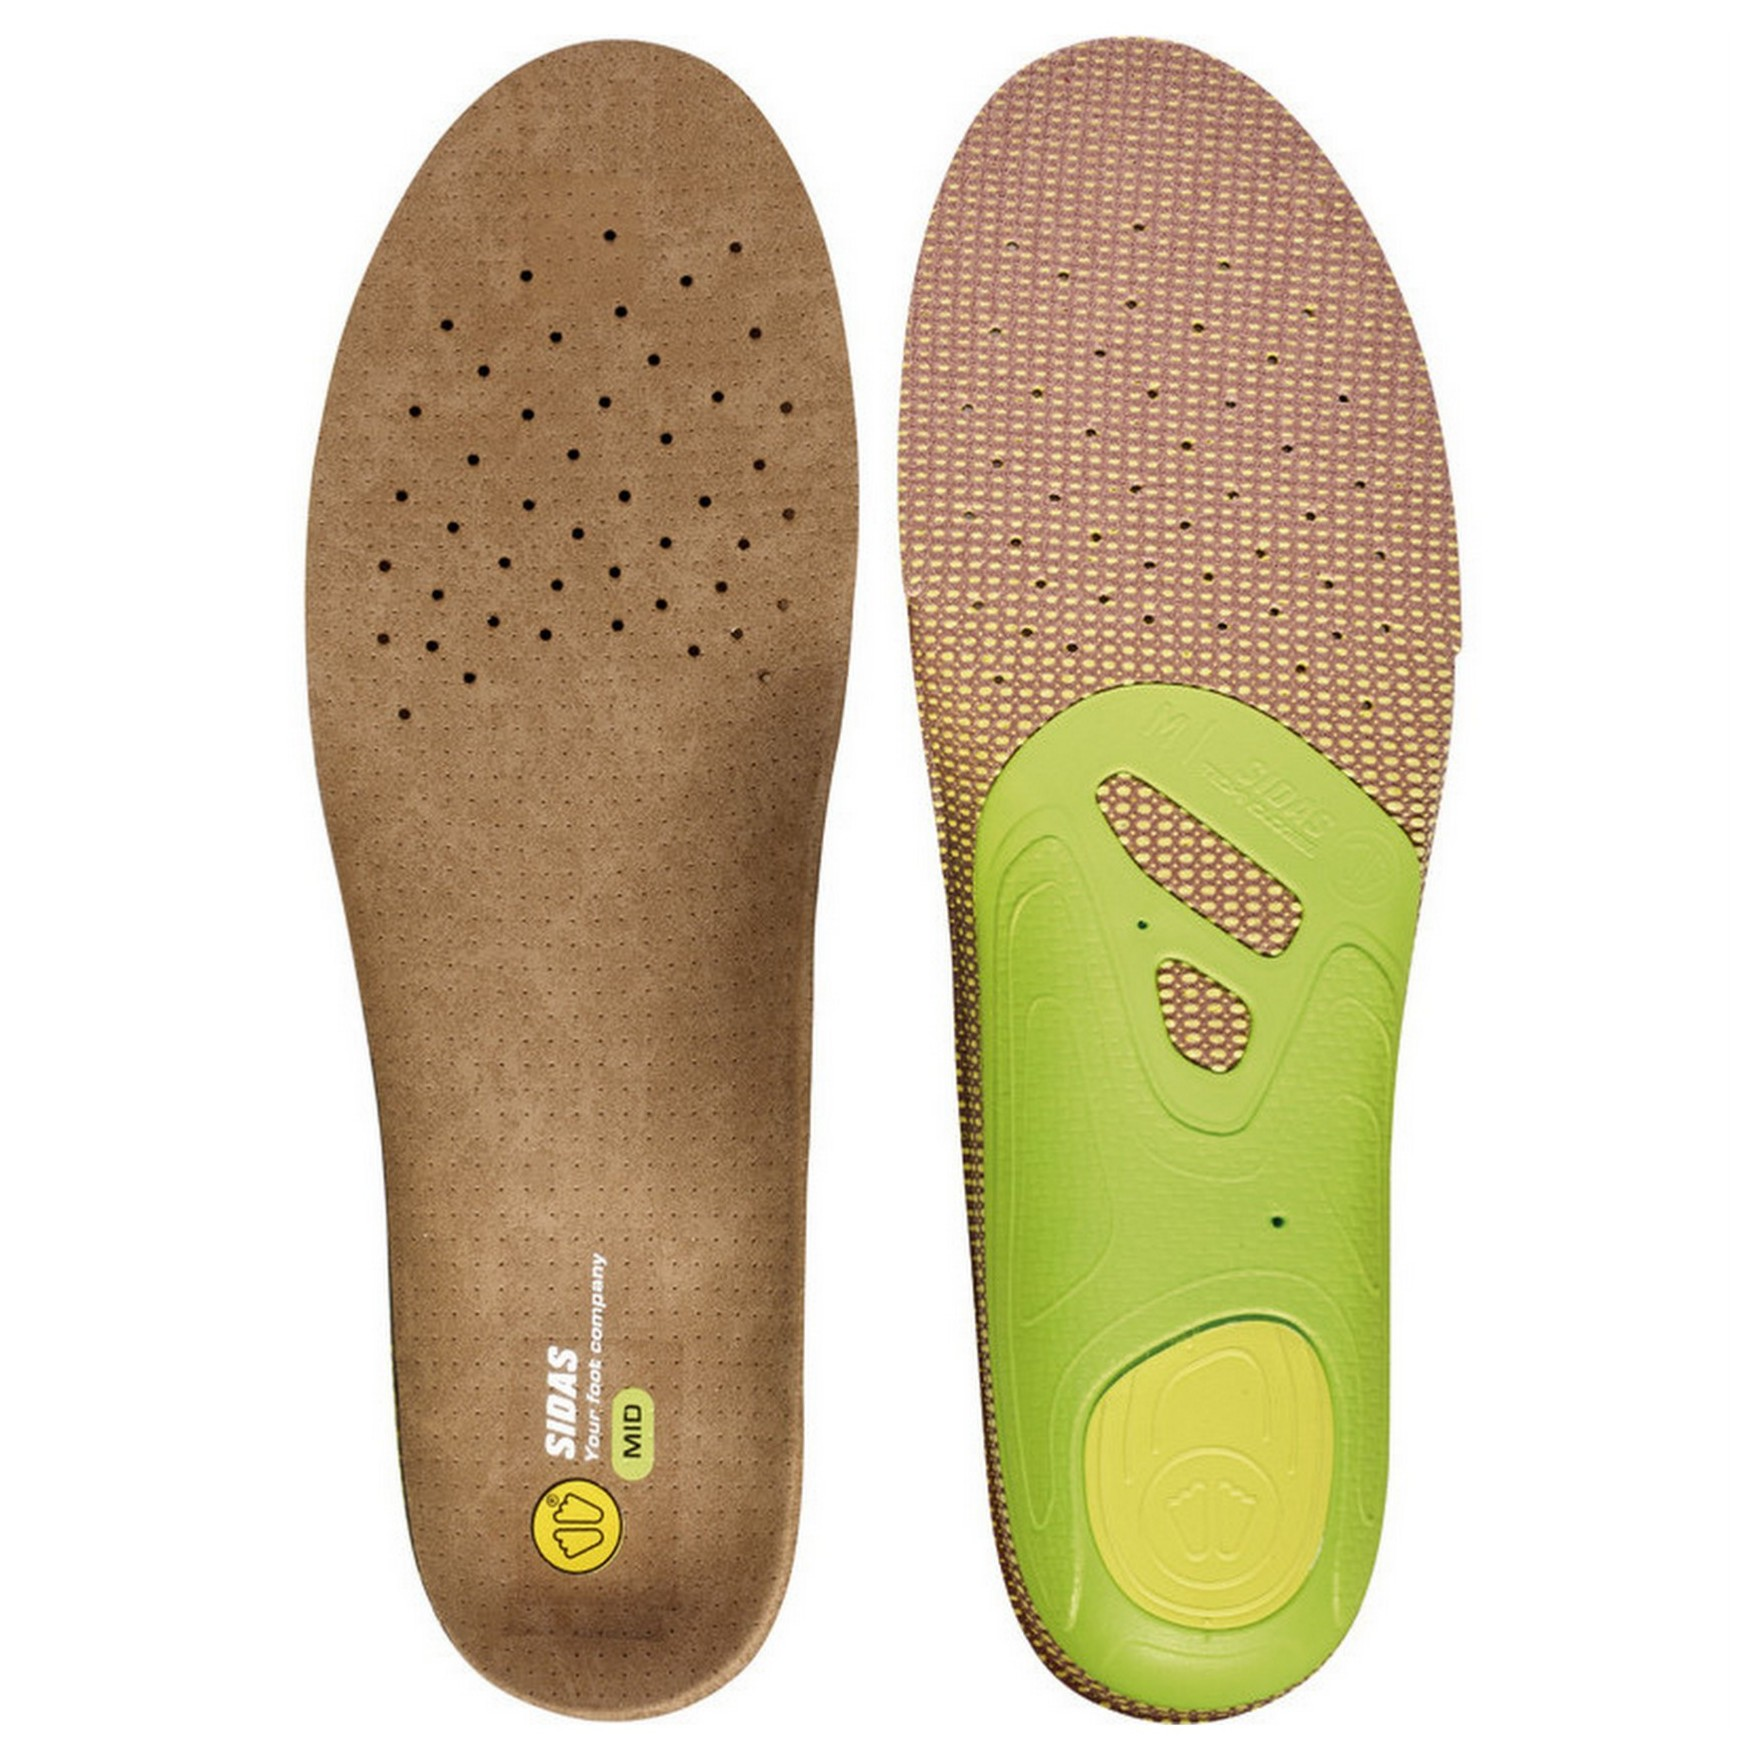 Sidas 3Feet Outdoor Mid Arch Anatomical Insoles